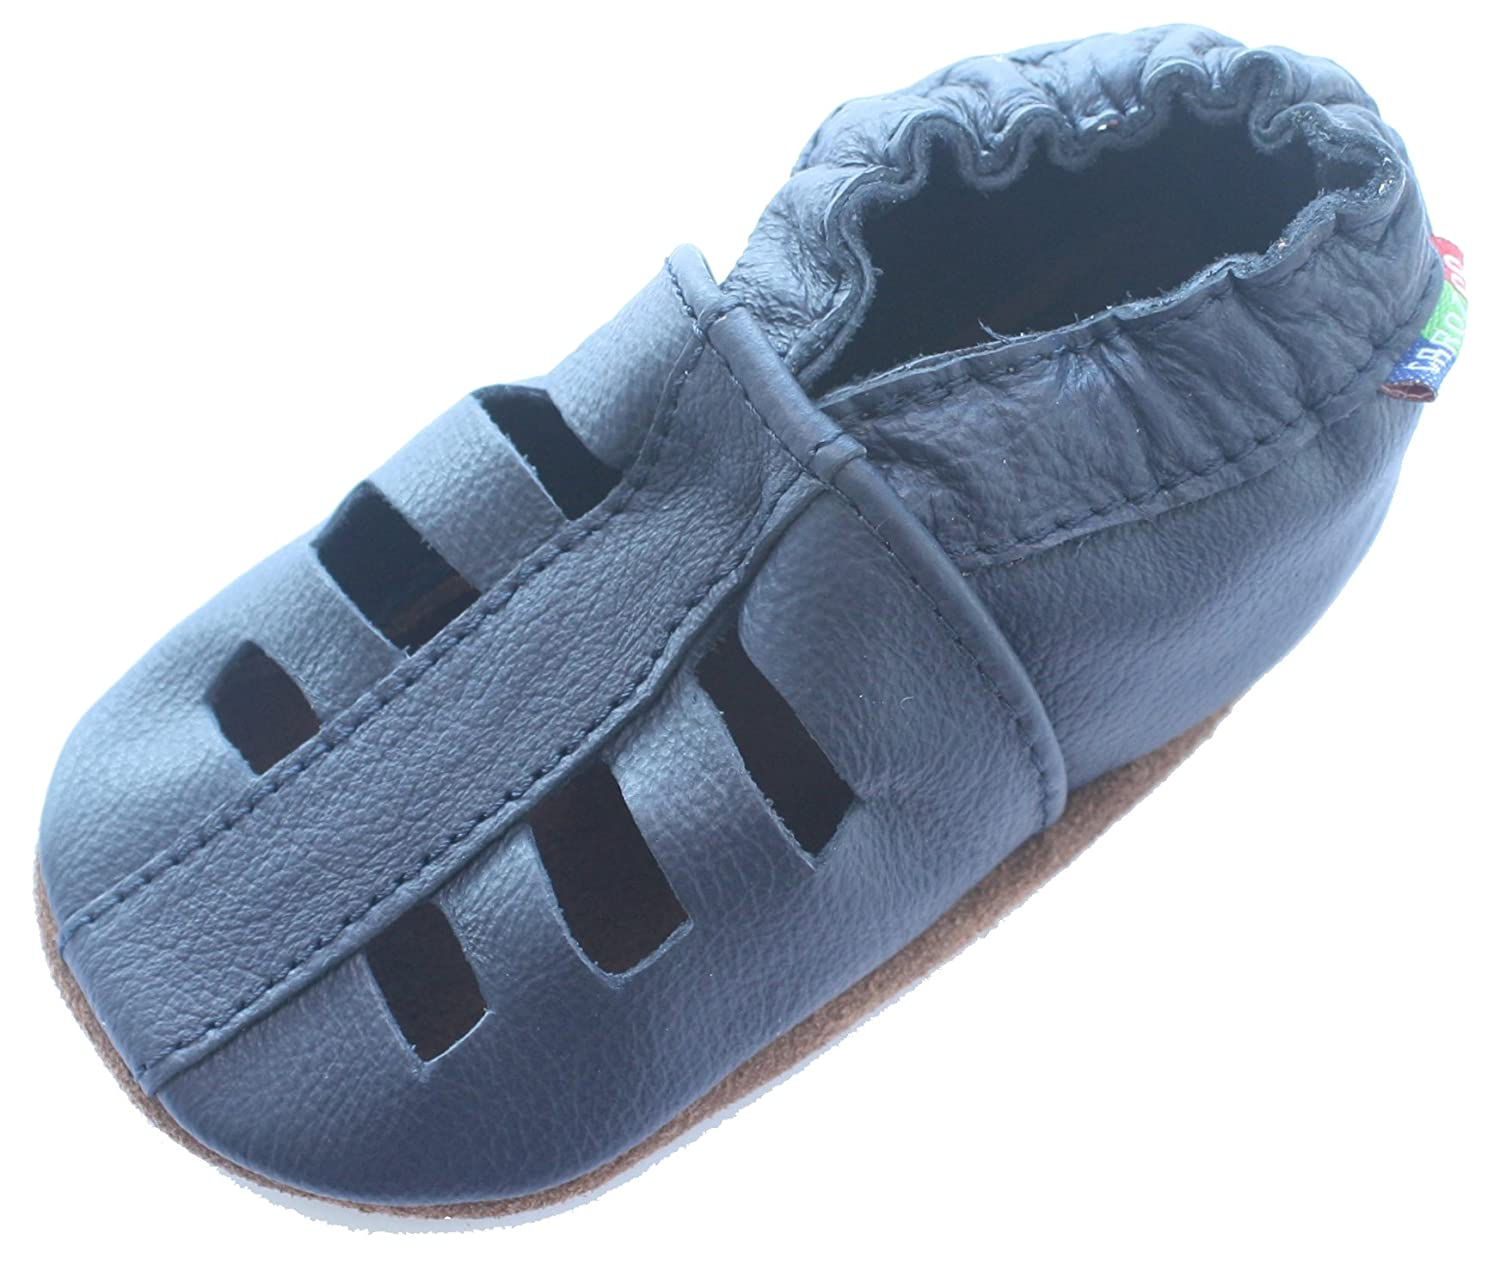 Carozoo Sandals Dark Blue Baby Boy Soft Sole Leather Shoes